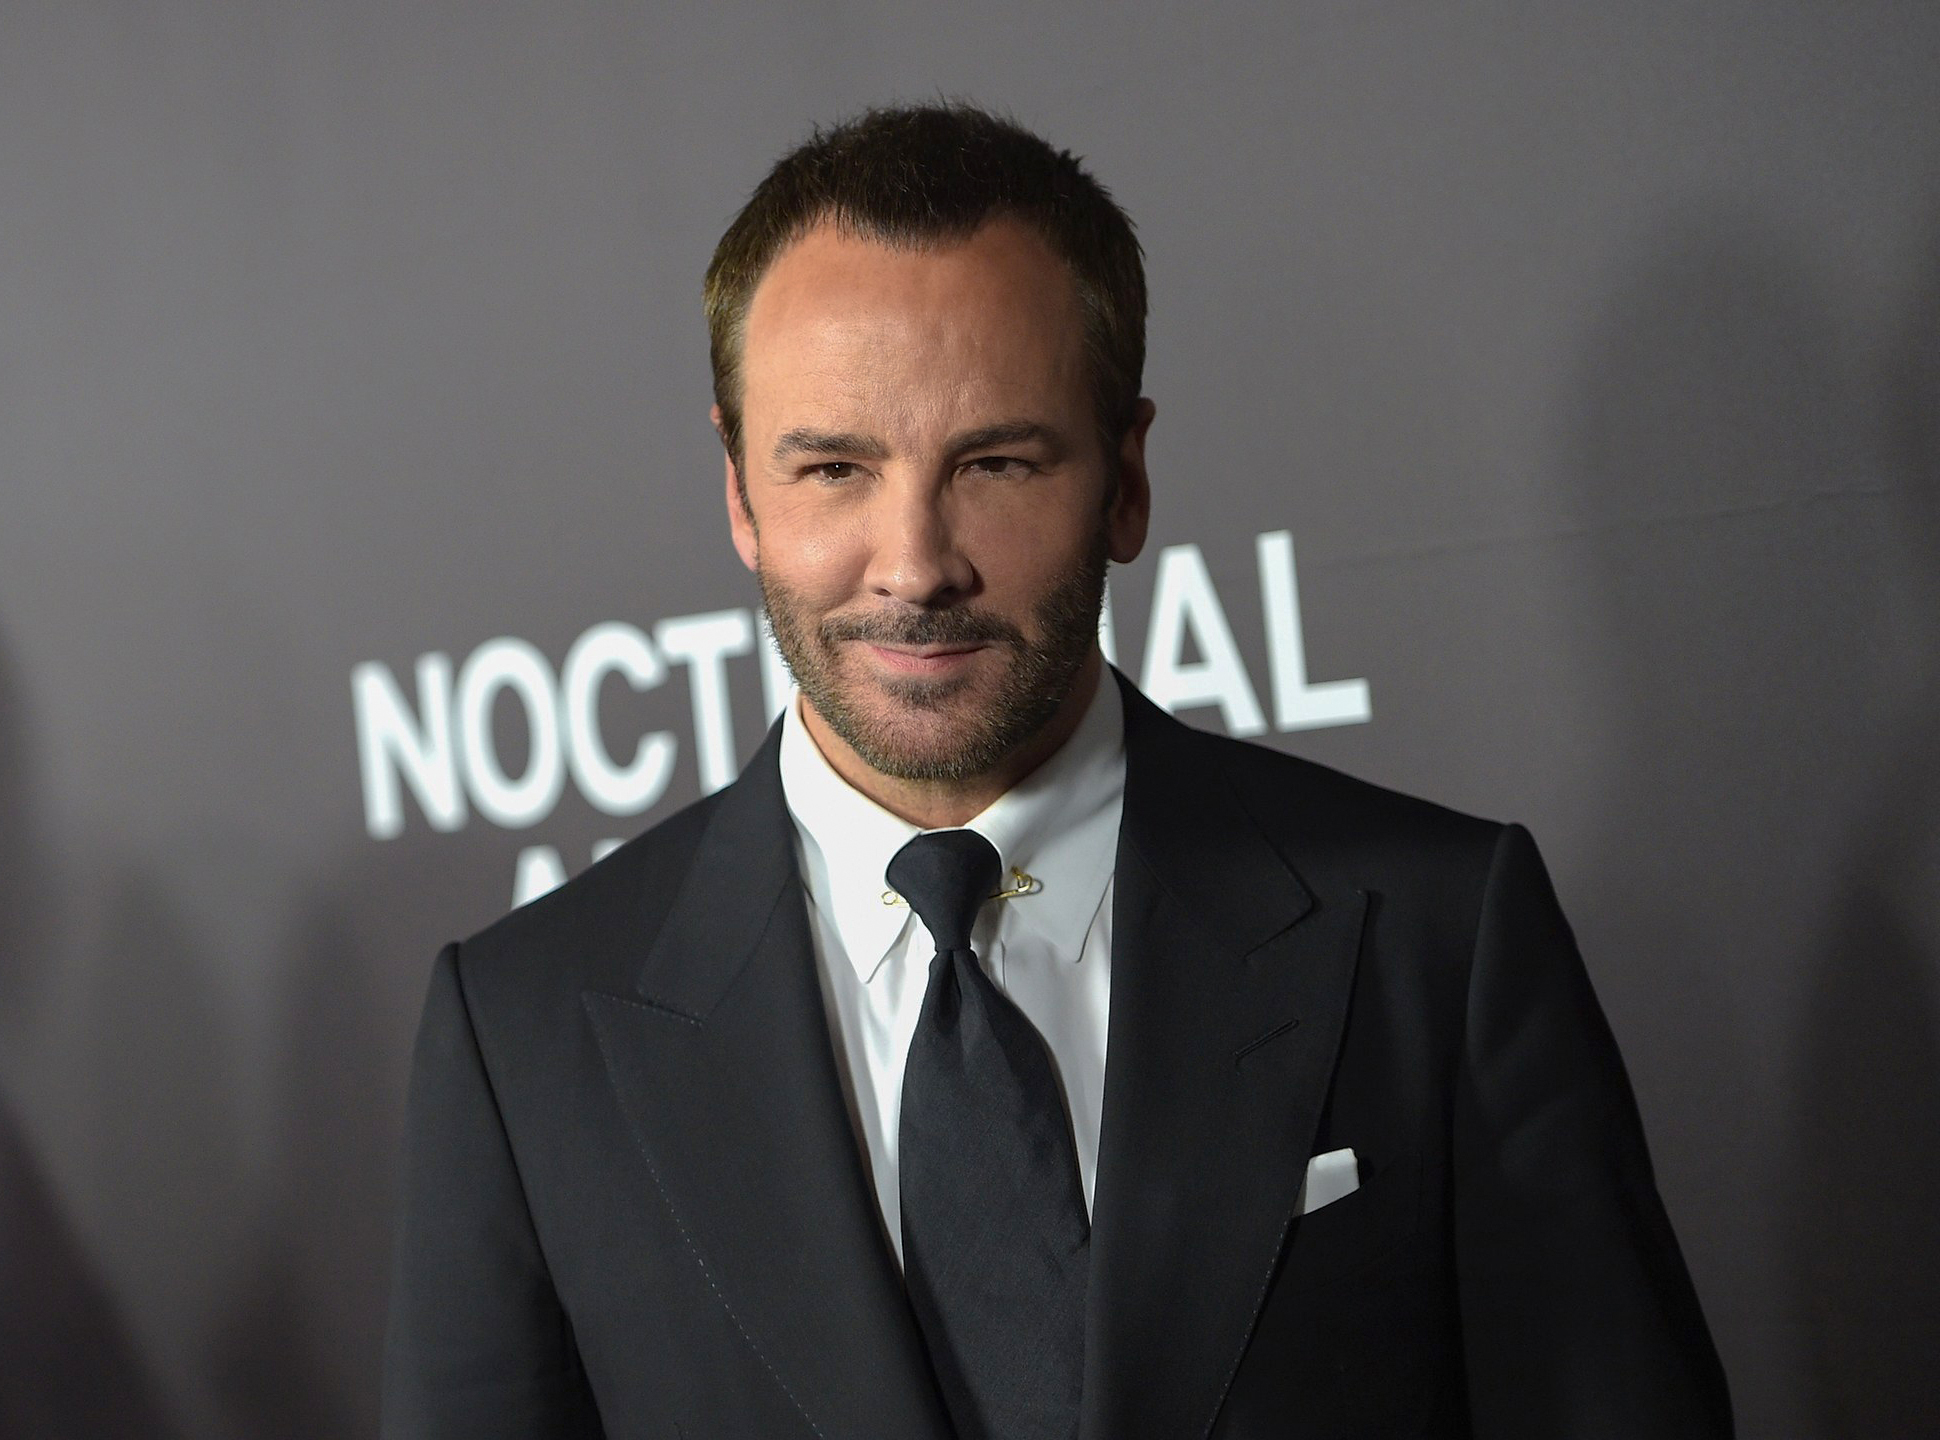 Tom Ford in his own suit brand